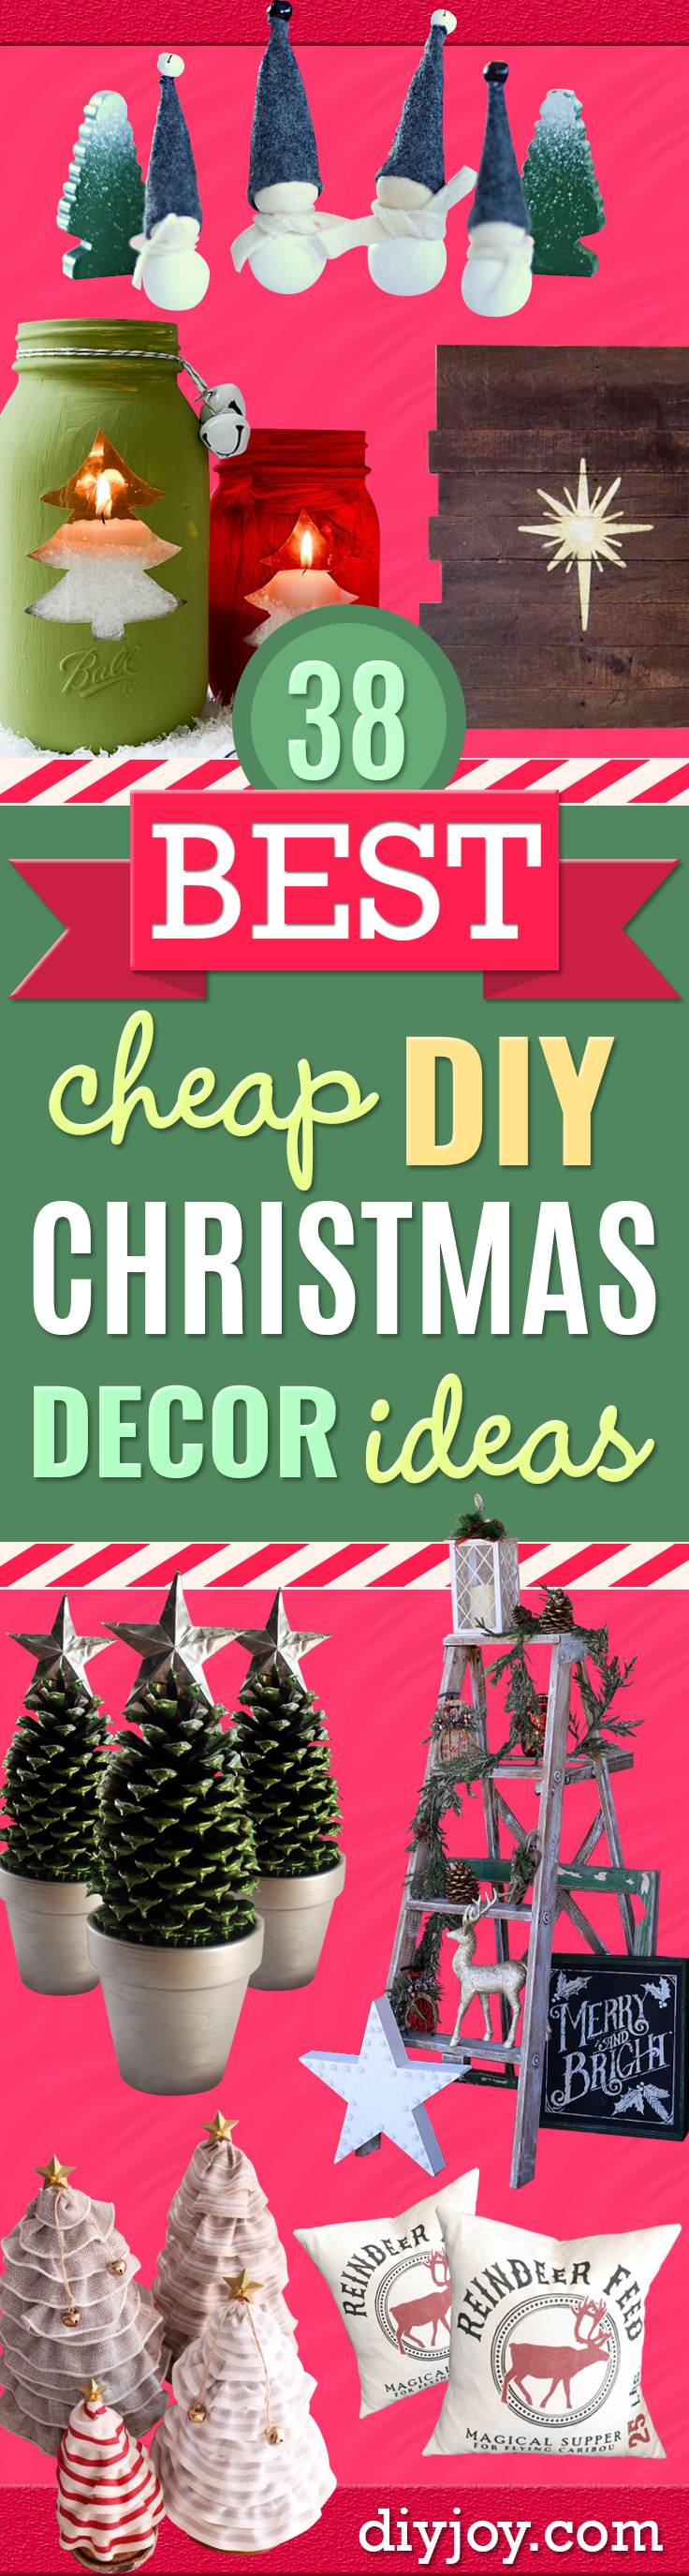 Cheap DIY Christmas Decor Ideas and Holiday Decorating On A Budget -Easy and Quick Decorating Ideas for The Holidays - Cool Dollar Store Crafts for Xmas Decorating On A Budget - wreaths, ornaments, bows, mantel decor, front door, tree and table centerpieces #christmas #diy #crafts